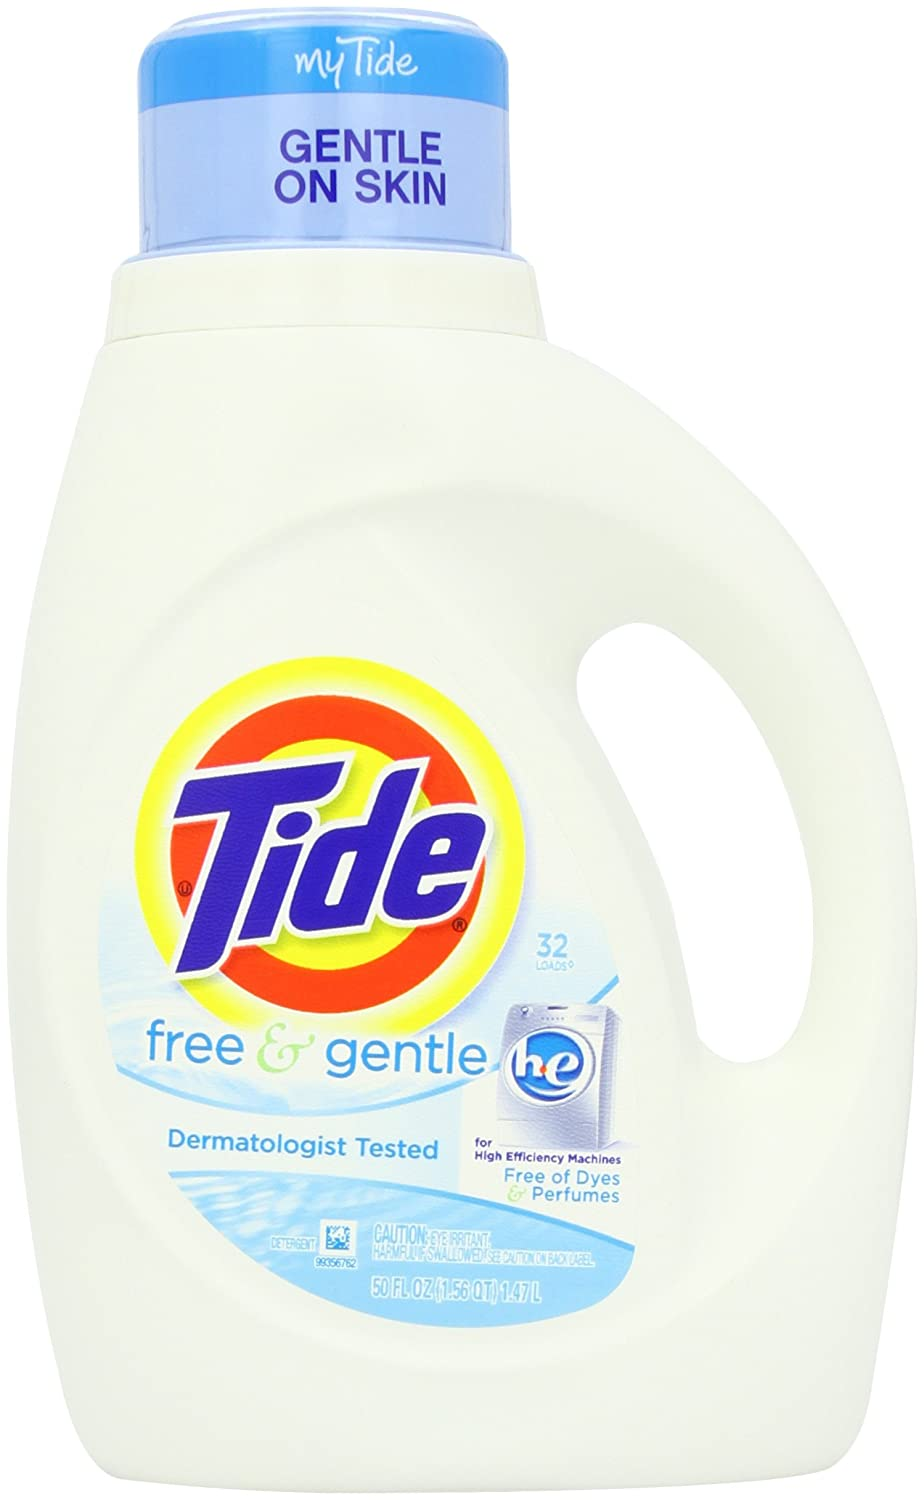 High Efficiency Detergent Brands Whats The Best Laundry Detergent Laundrybasics